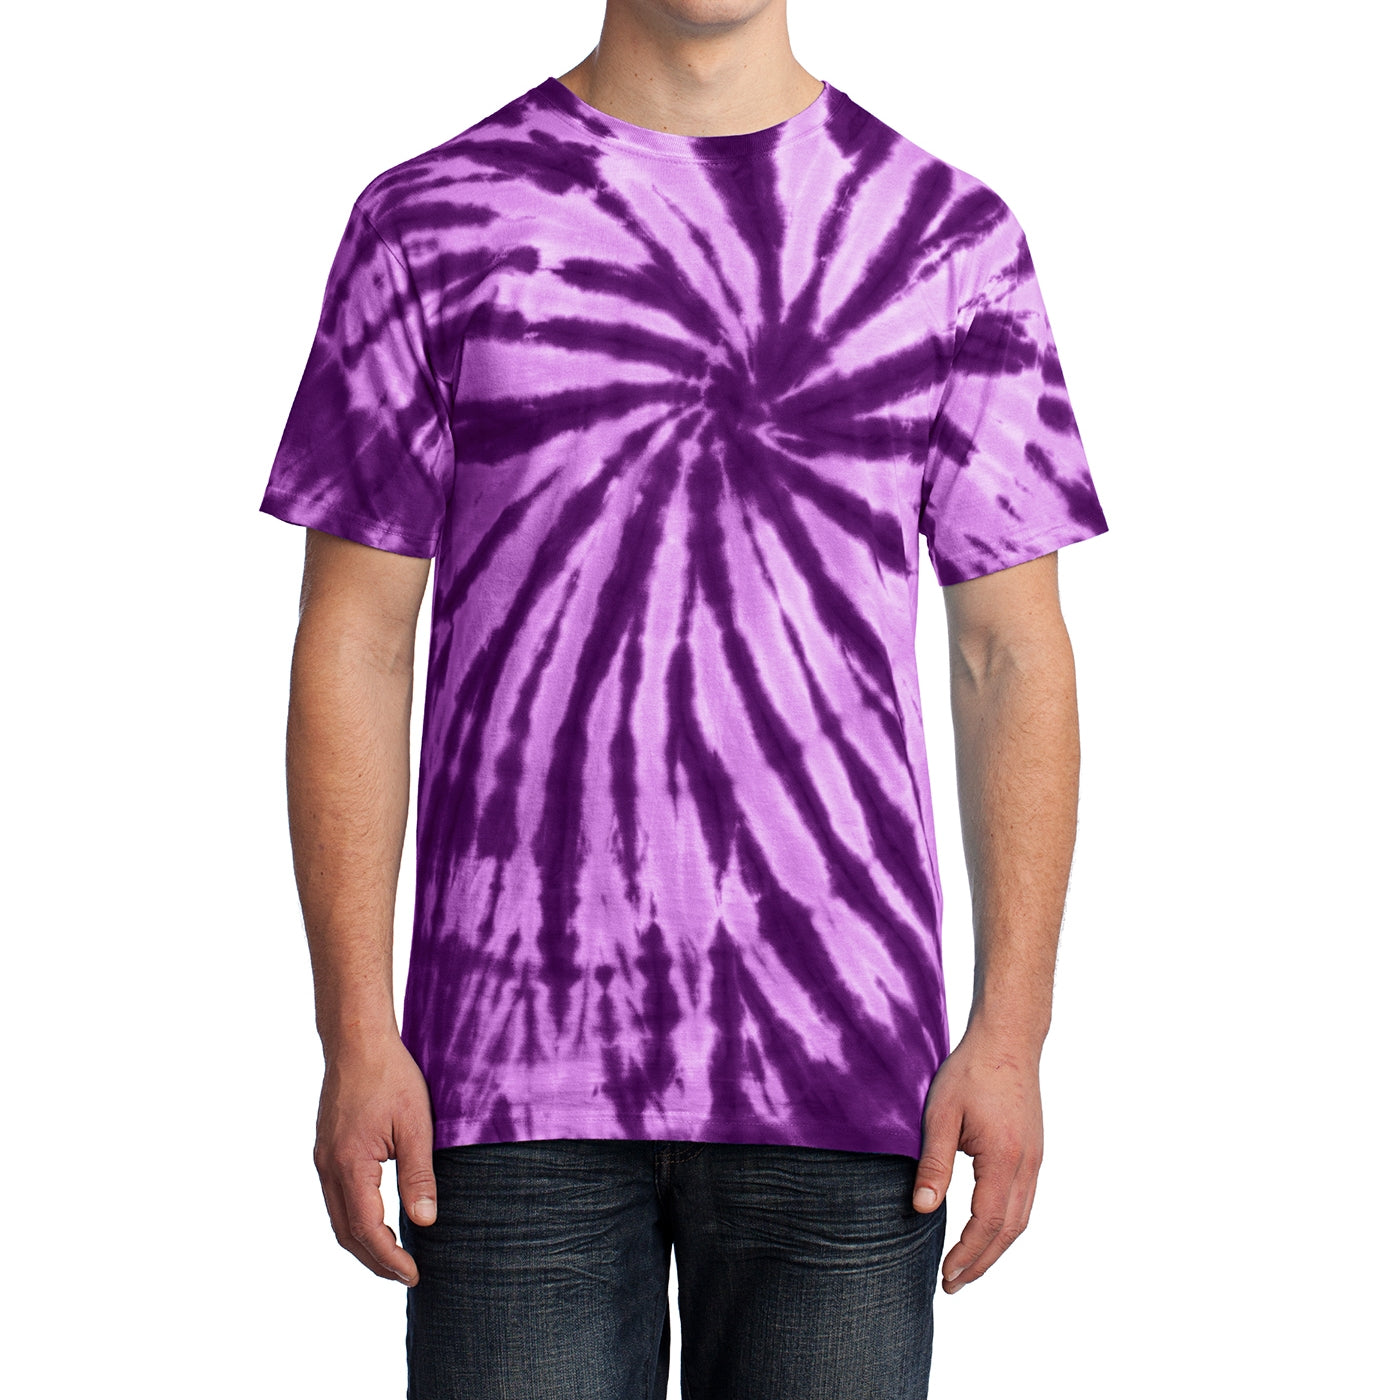 Men's Tie-Dye Tee -  Purple - Front